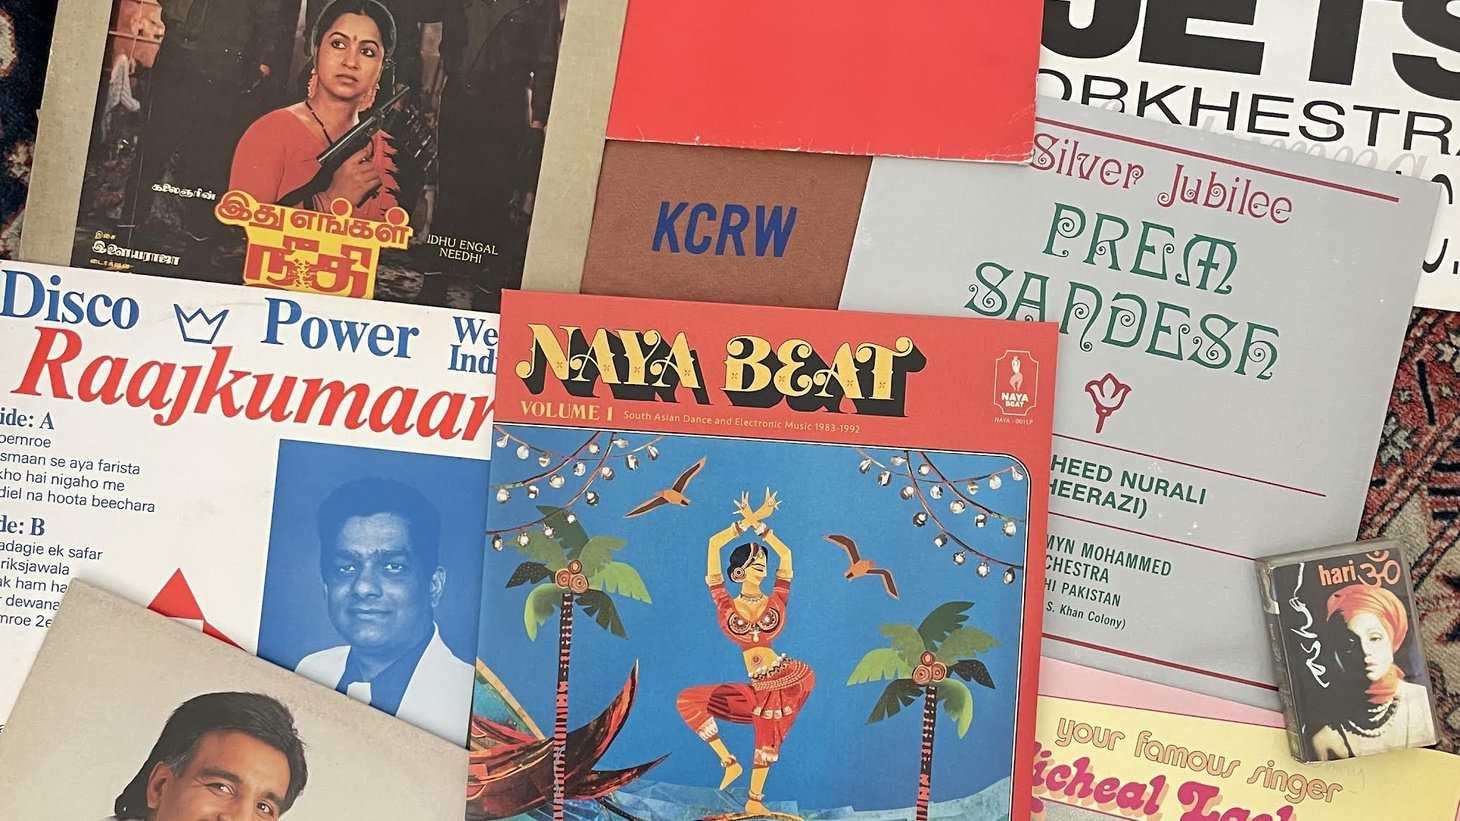 Delve into the sounds of the Indian diaspora with Naya Beat.